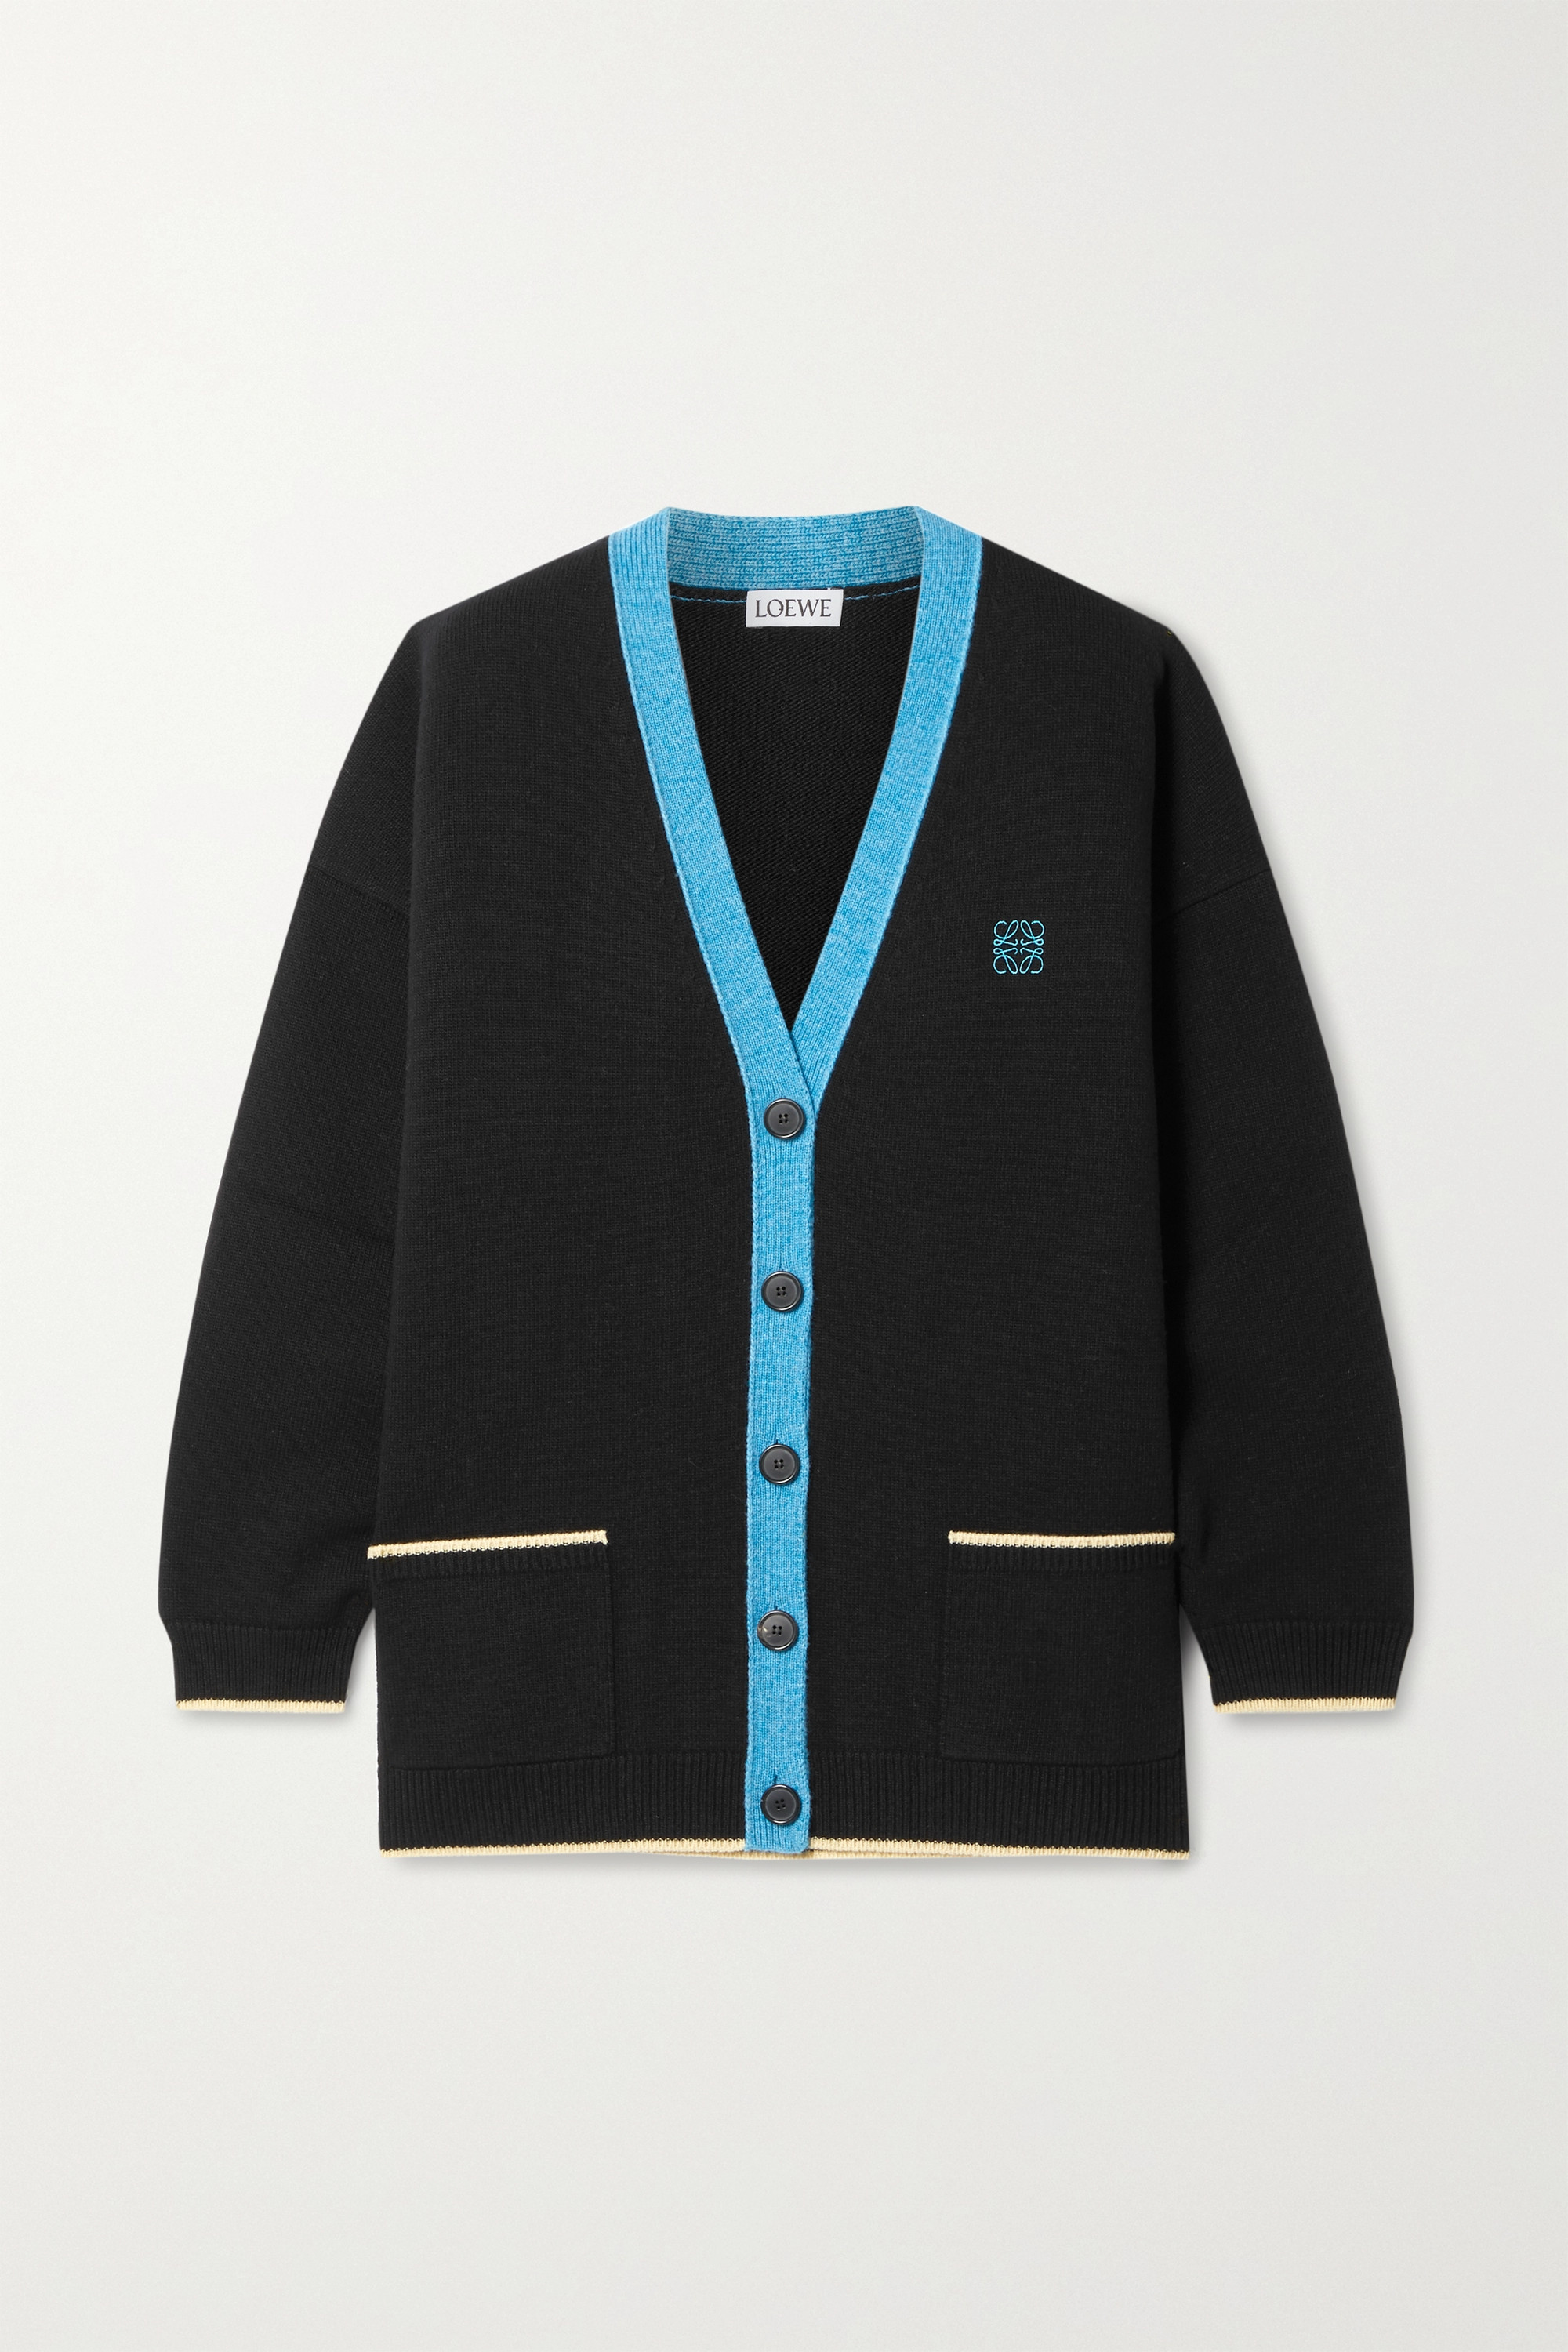 LOEWE Oversized embroidered wool cardigan